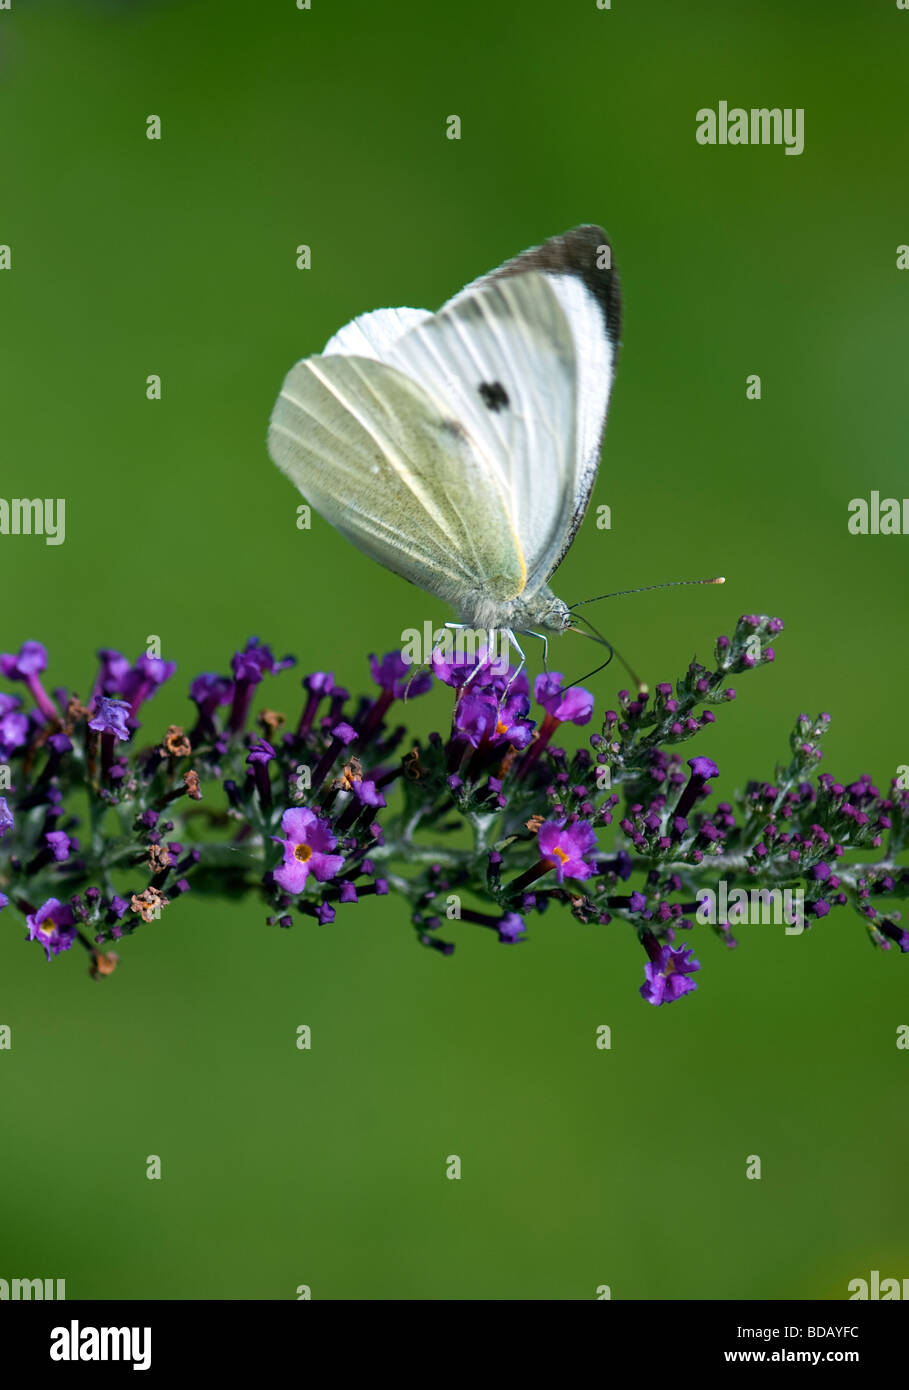 Large White Butterfly On Buddleia (Pieris brassicae) - Stock Image